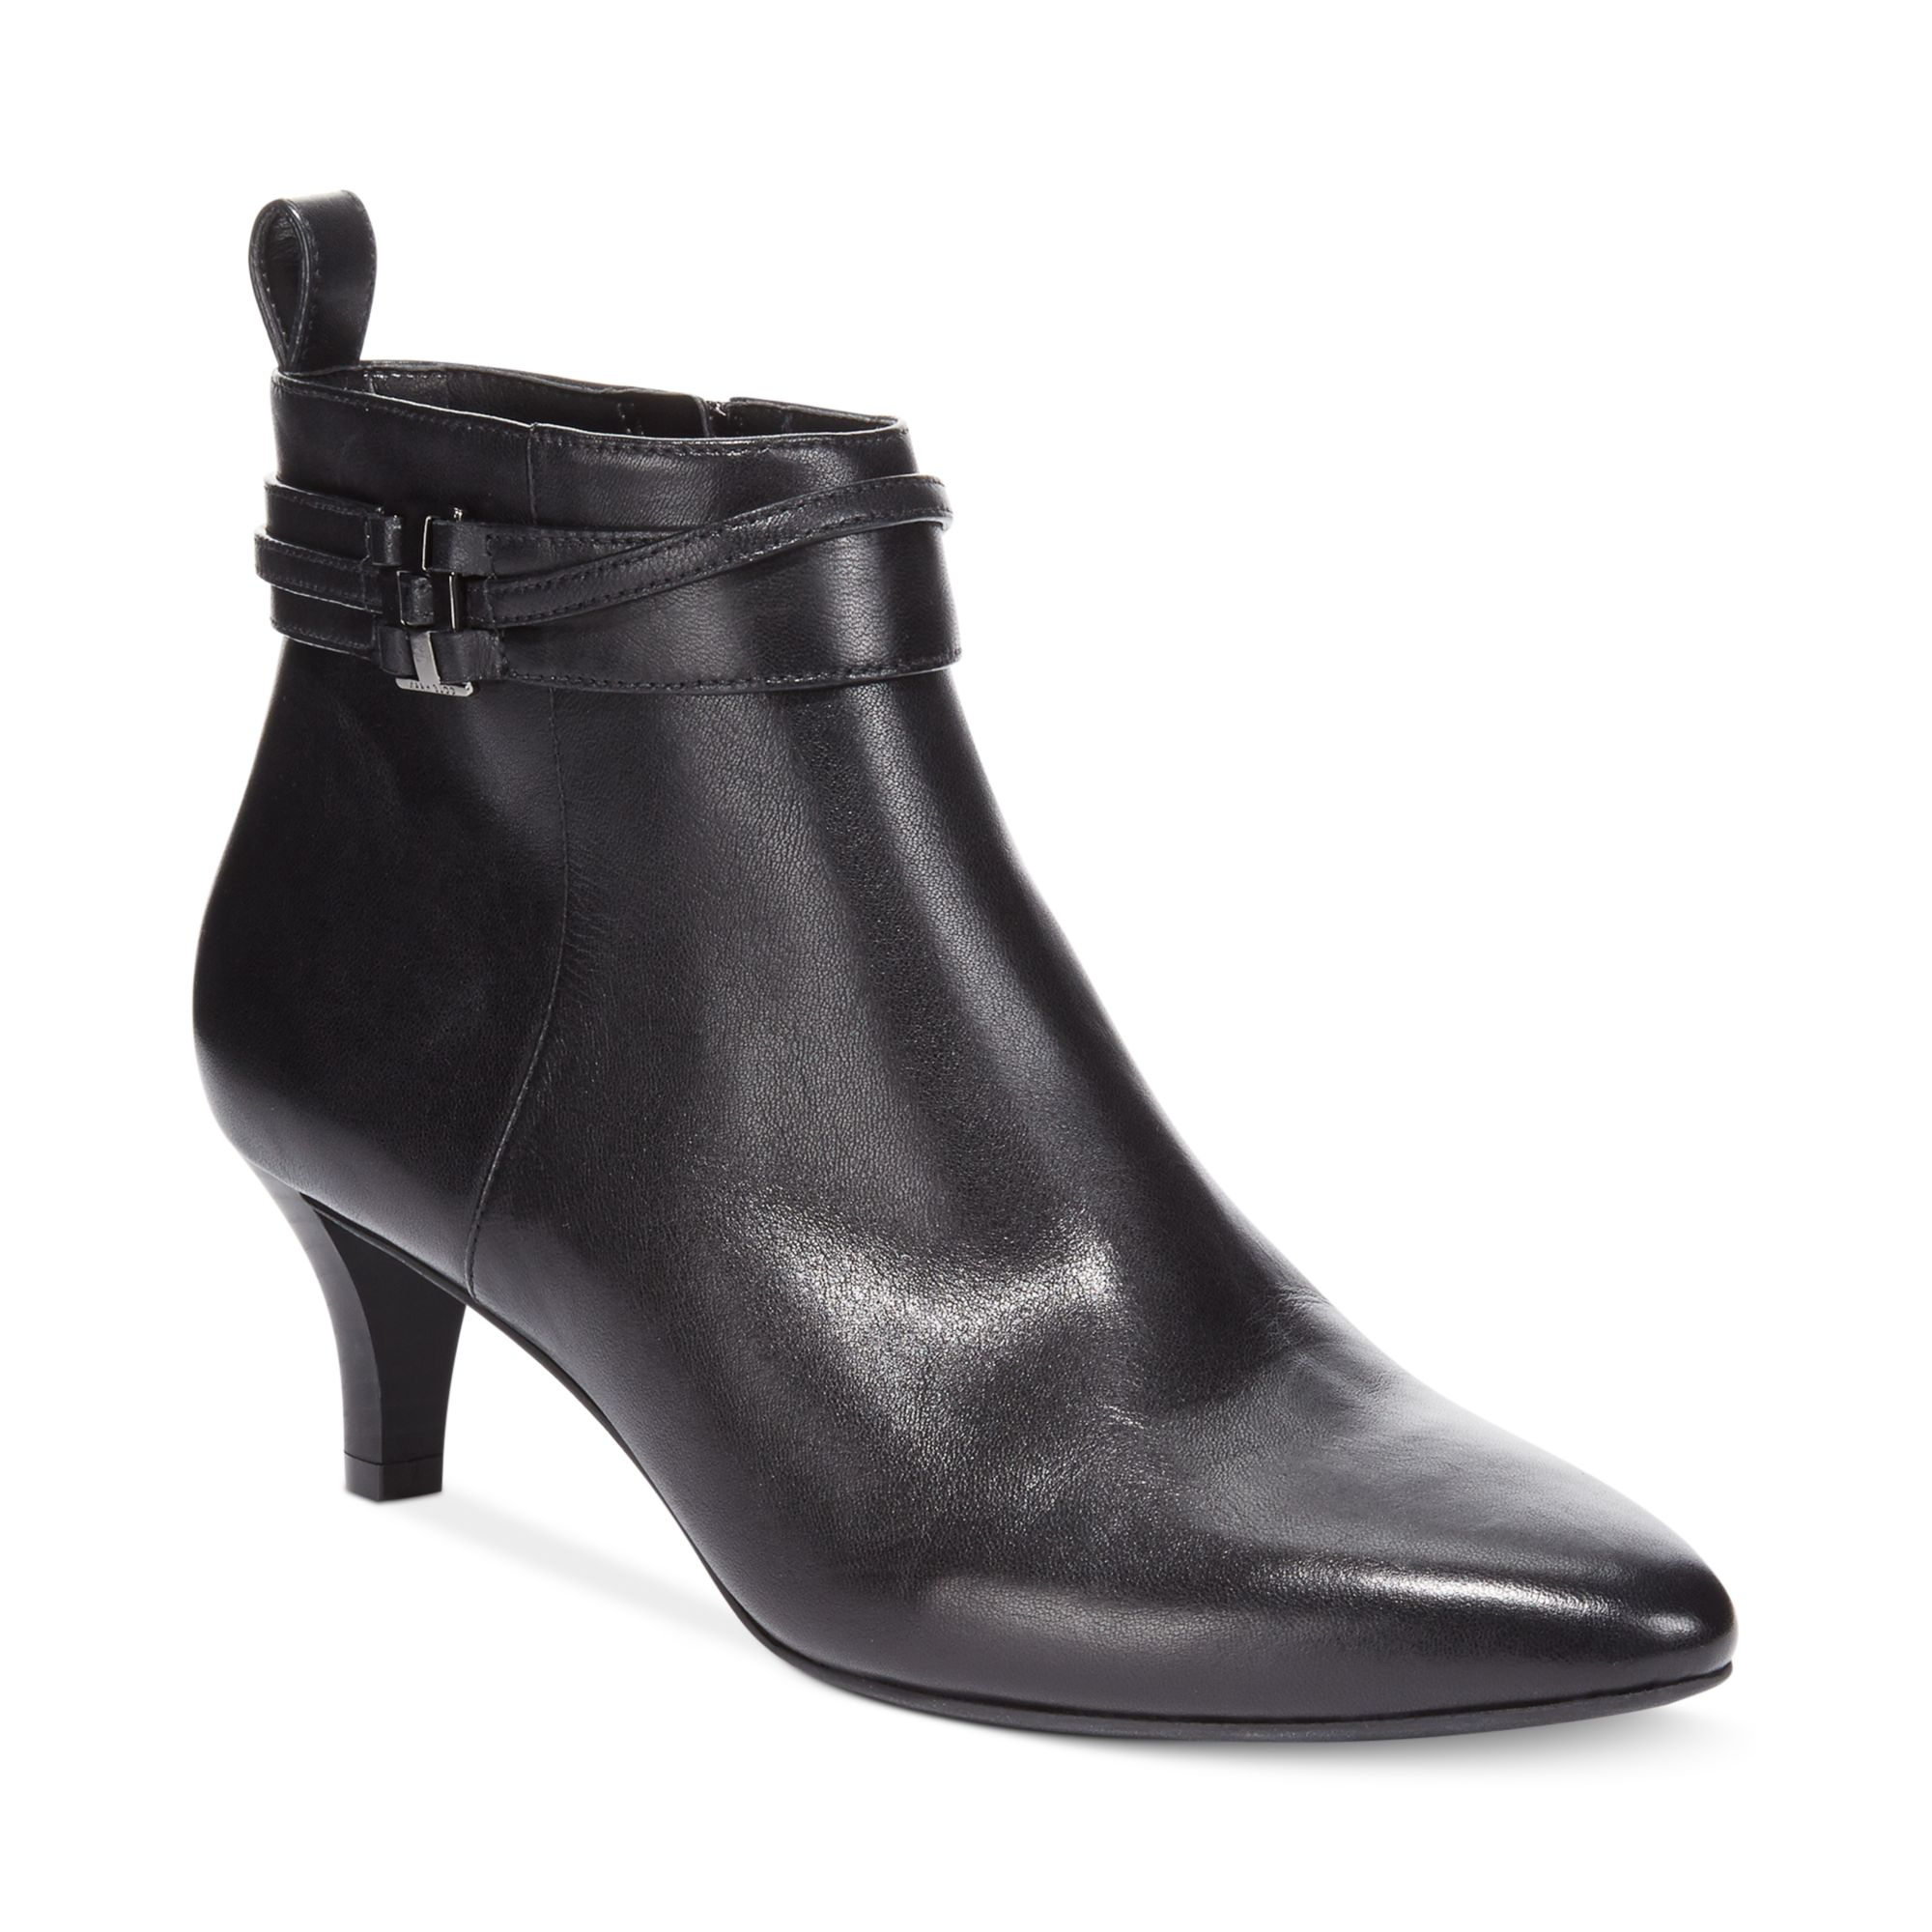 Womens Boots & Booties Sale: Save up to 85% Off funnebux.gq's huge selection of women's boots and booties on sale! Over 4, styles available. FREE Shipping and Exchanges, and a .